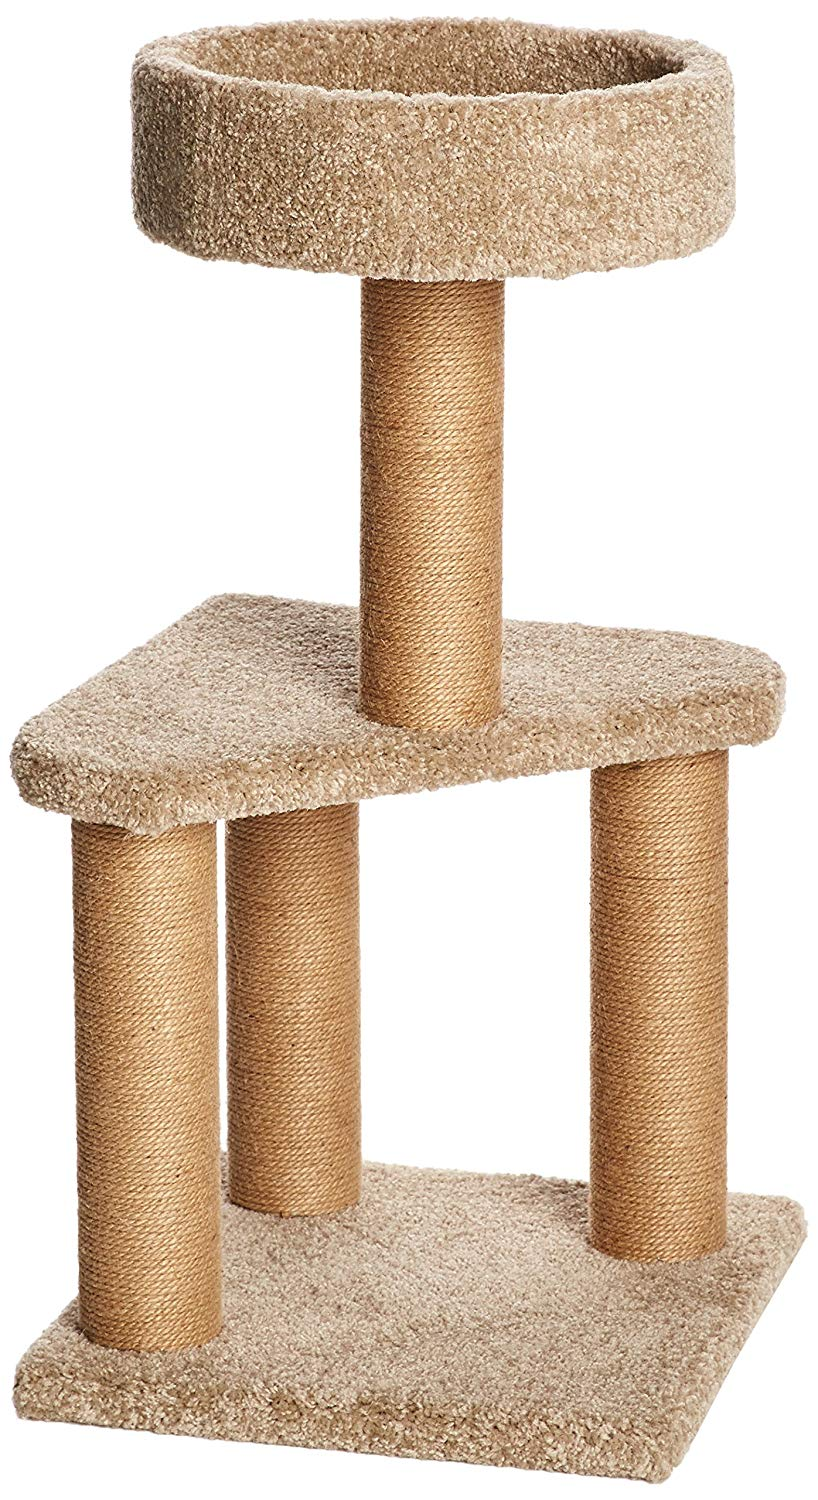 Cat Activity Tree With Scratching Posts by AmazonBasics